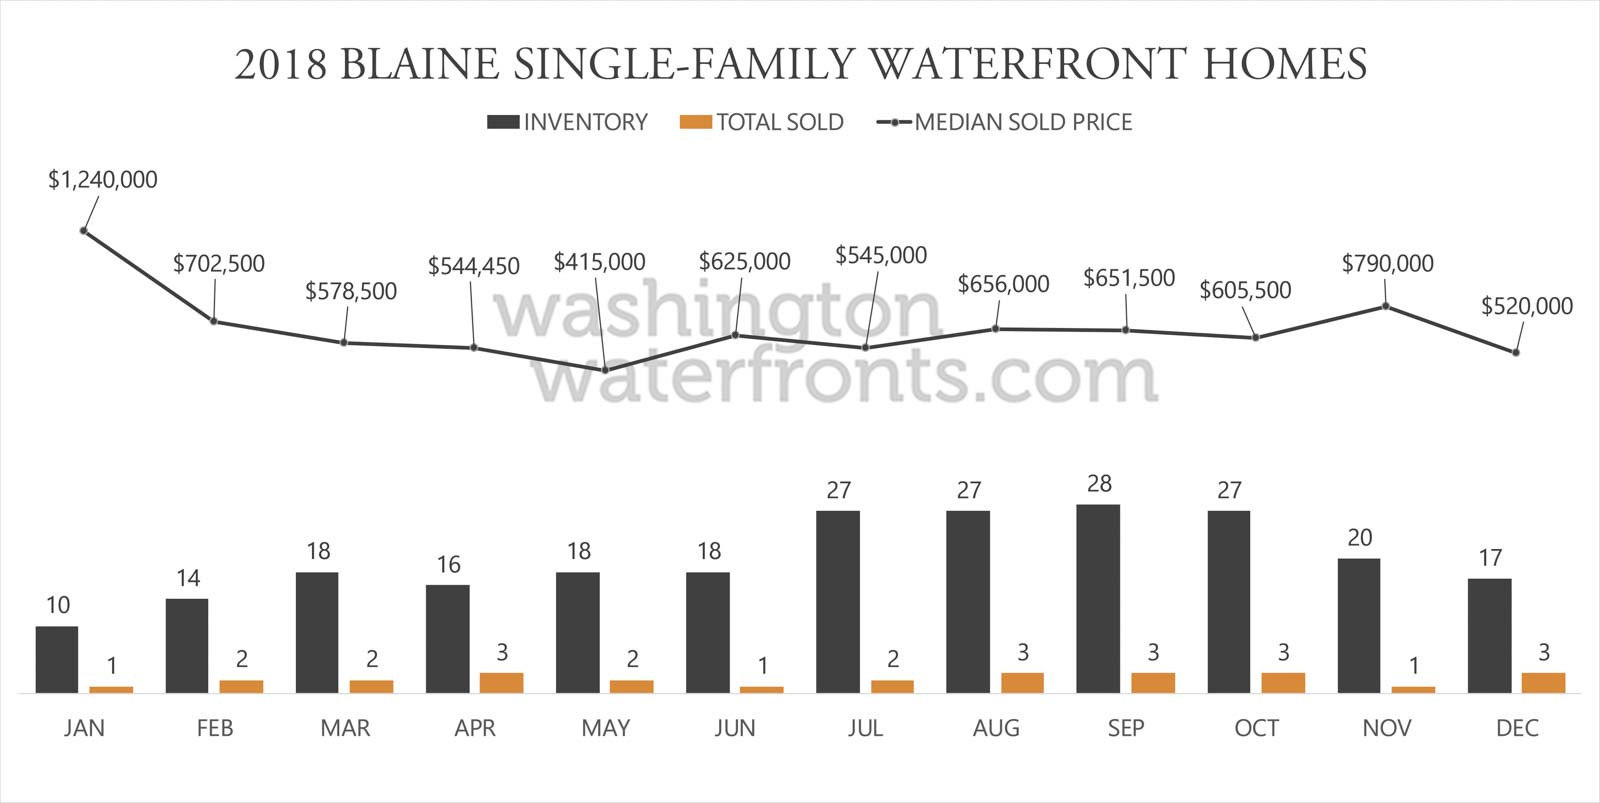 Blaine Waterfront Inventory